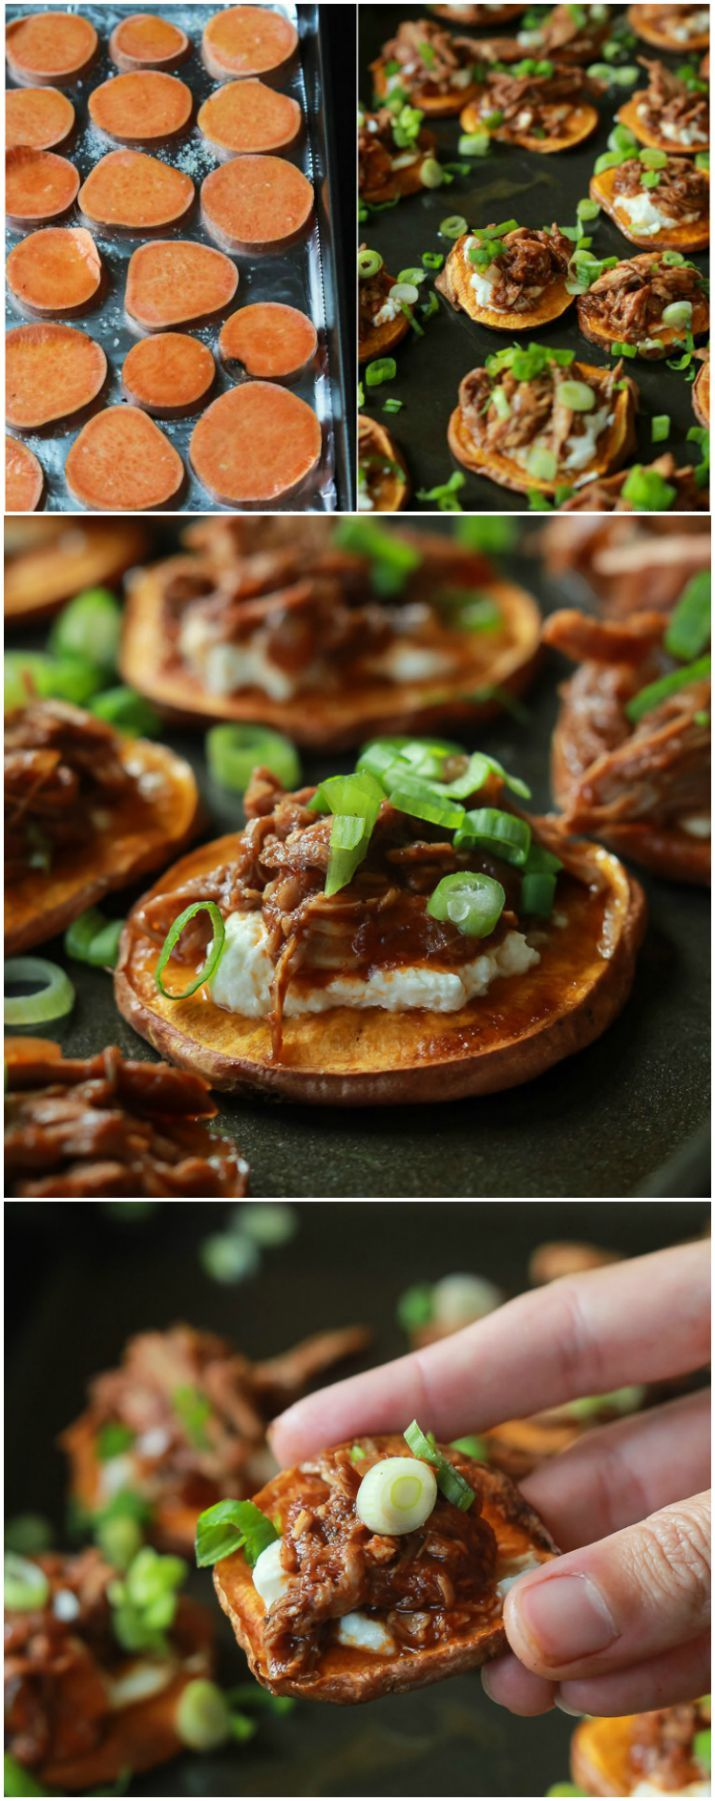 BBQ Pulled Pork Sweet Potato Bites - Topped with creamy whipped goat cheese and moist pulled pork with a few secret ingredients.